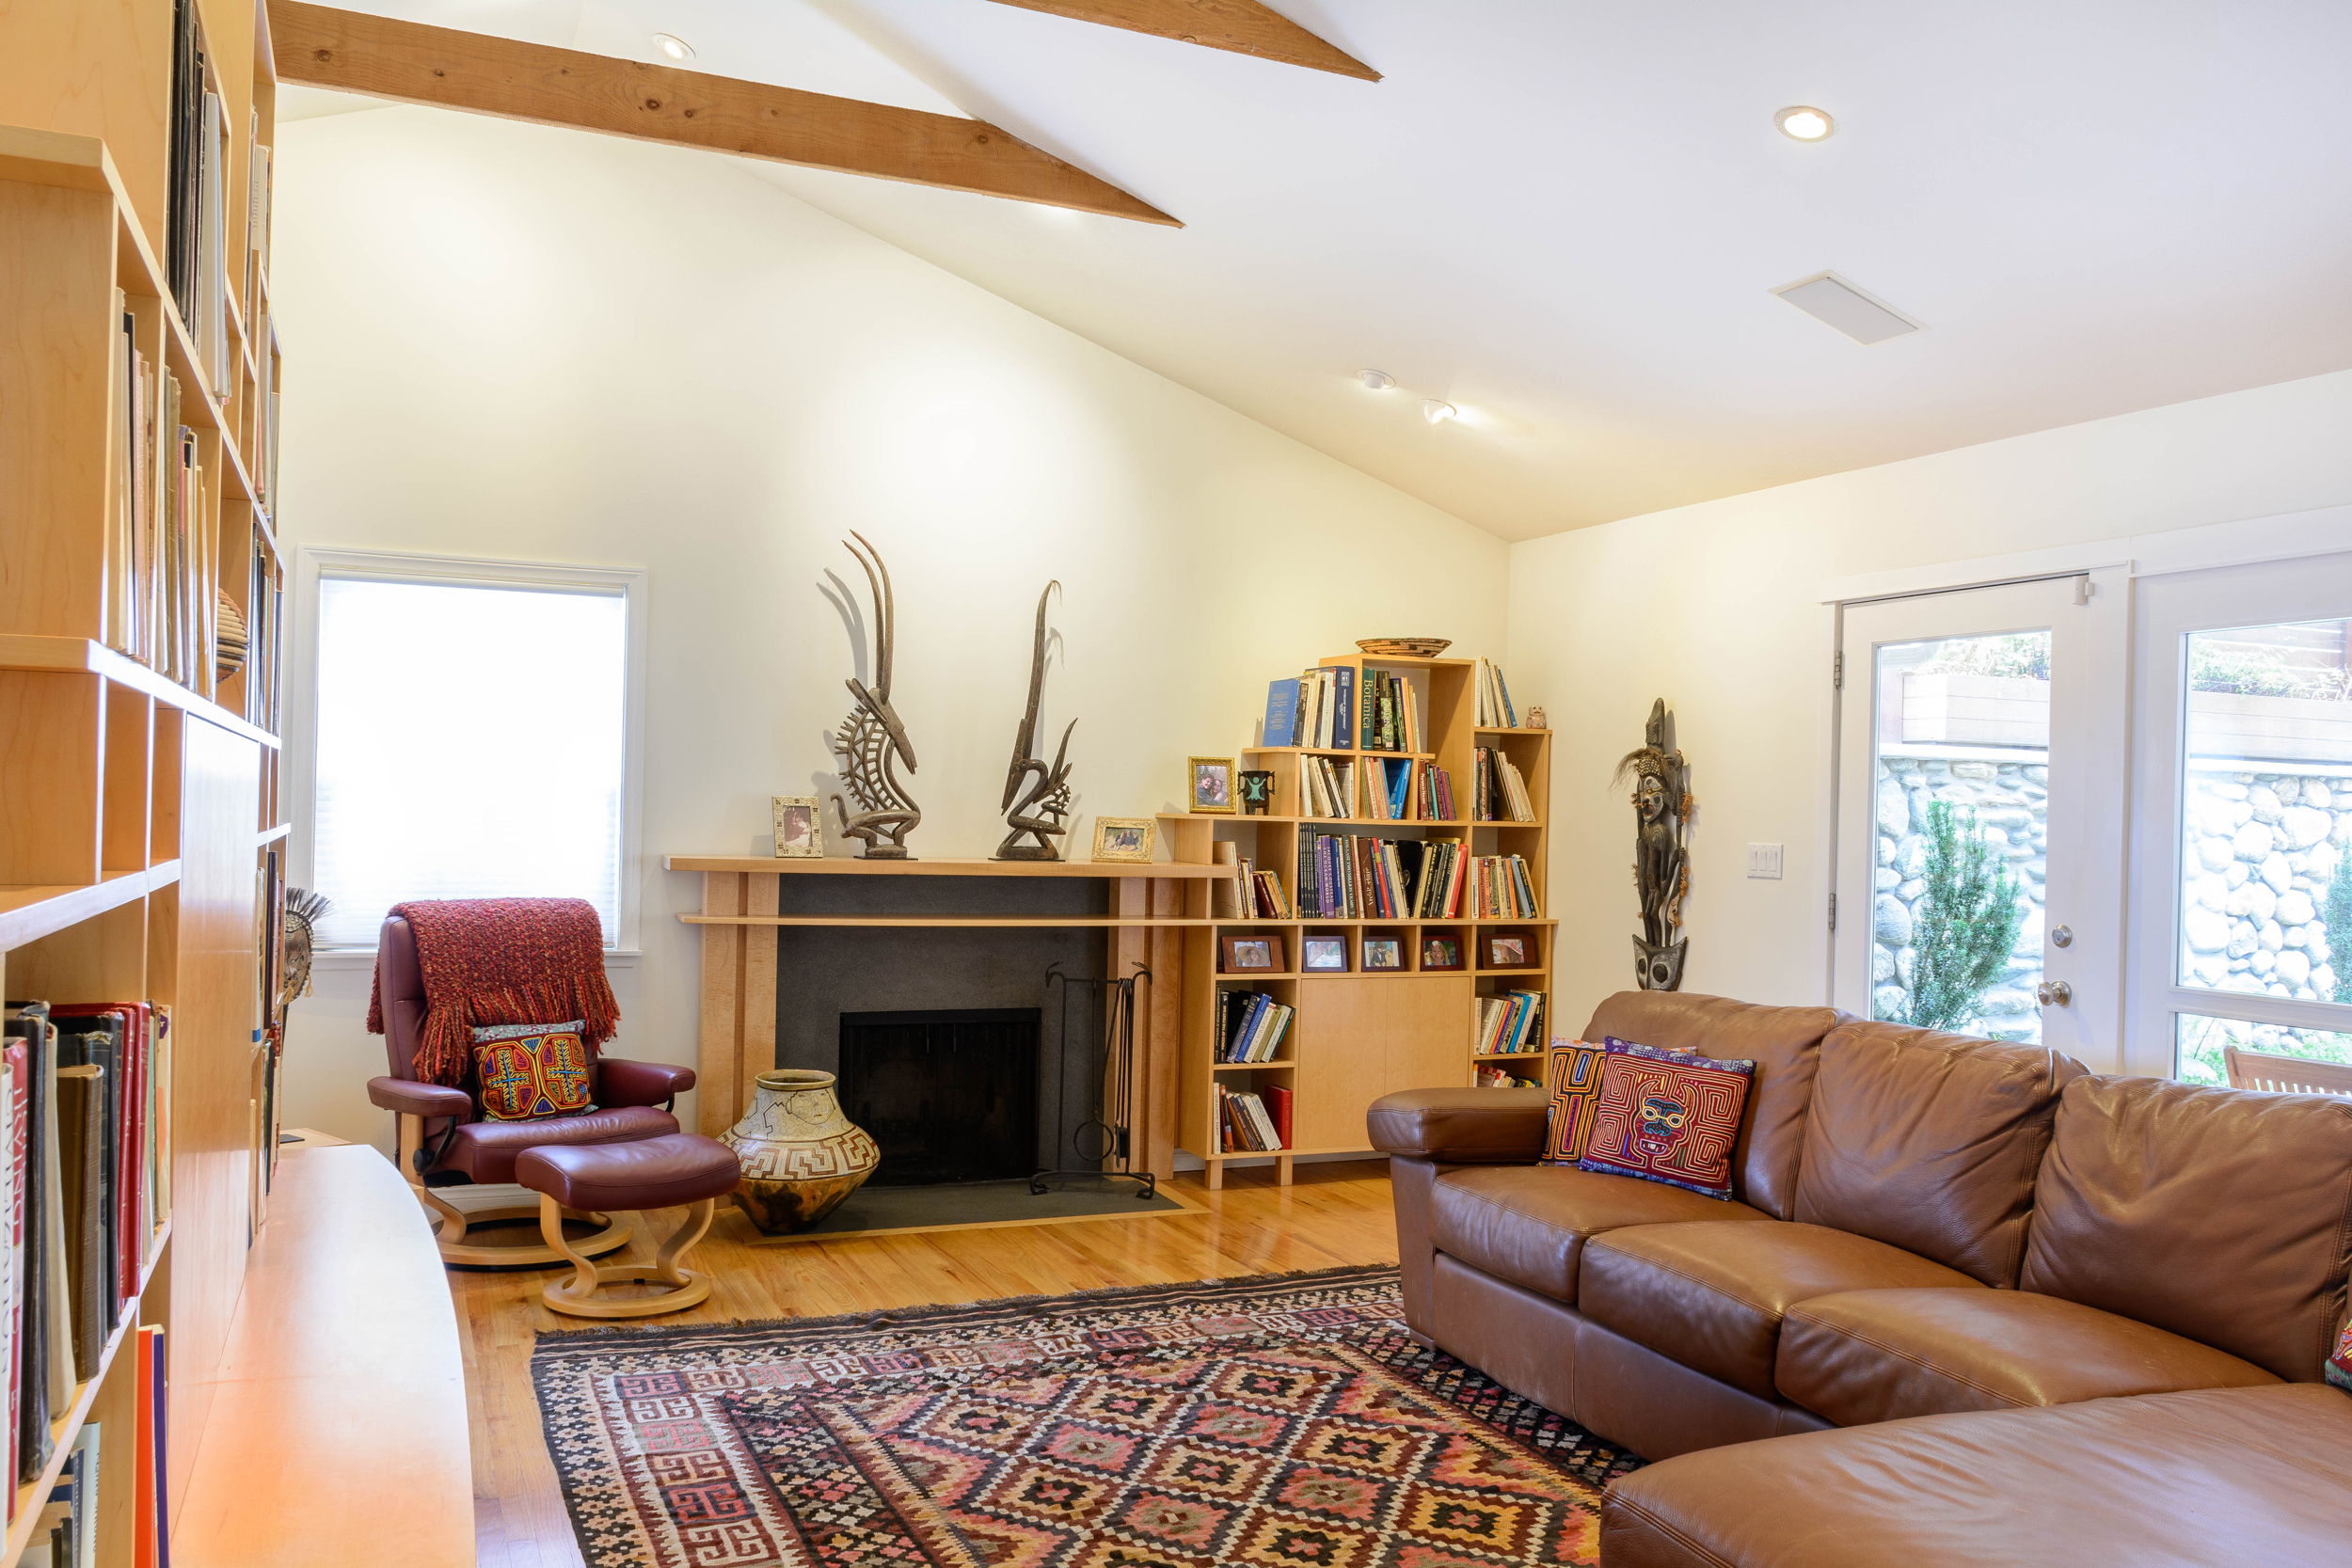 Bright, comfortable and warm living room with cathedral ceiling and exposed structural beams opening onto the backyard